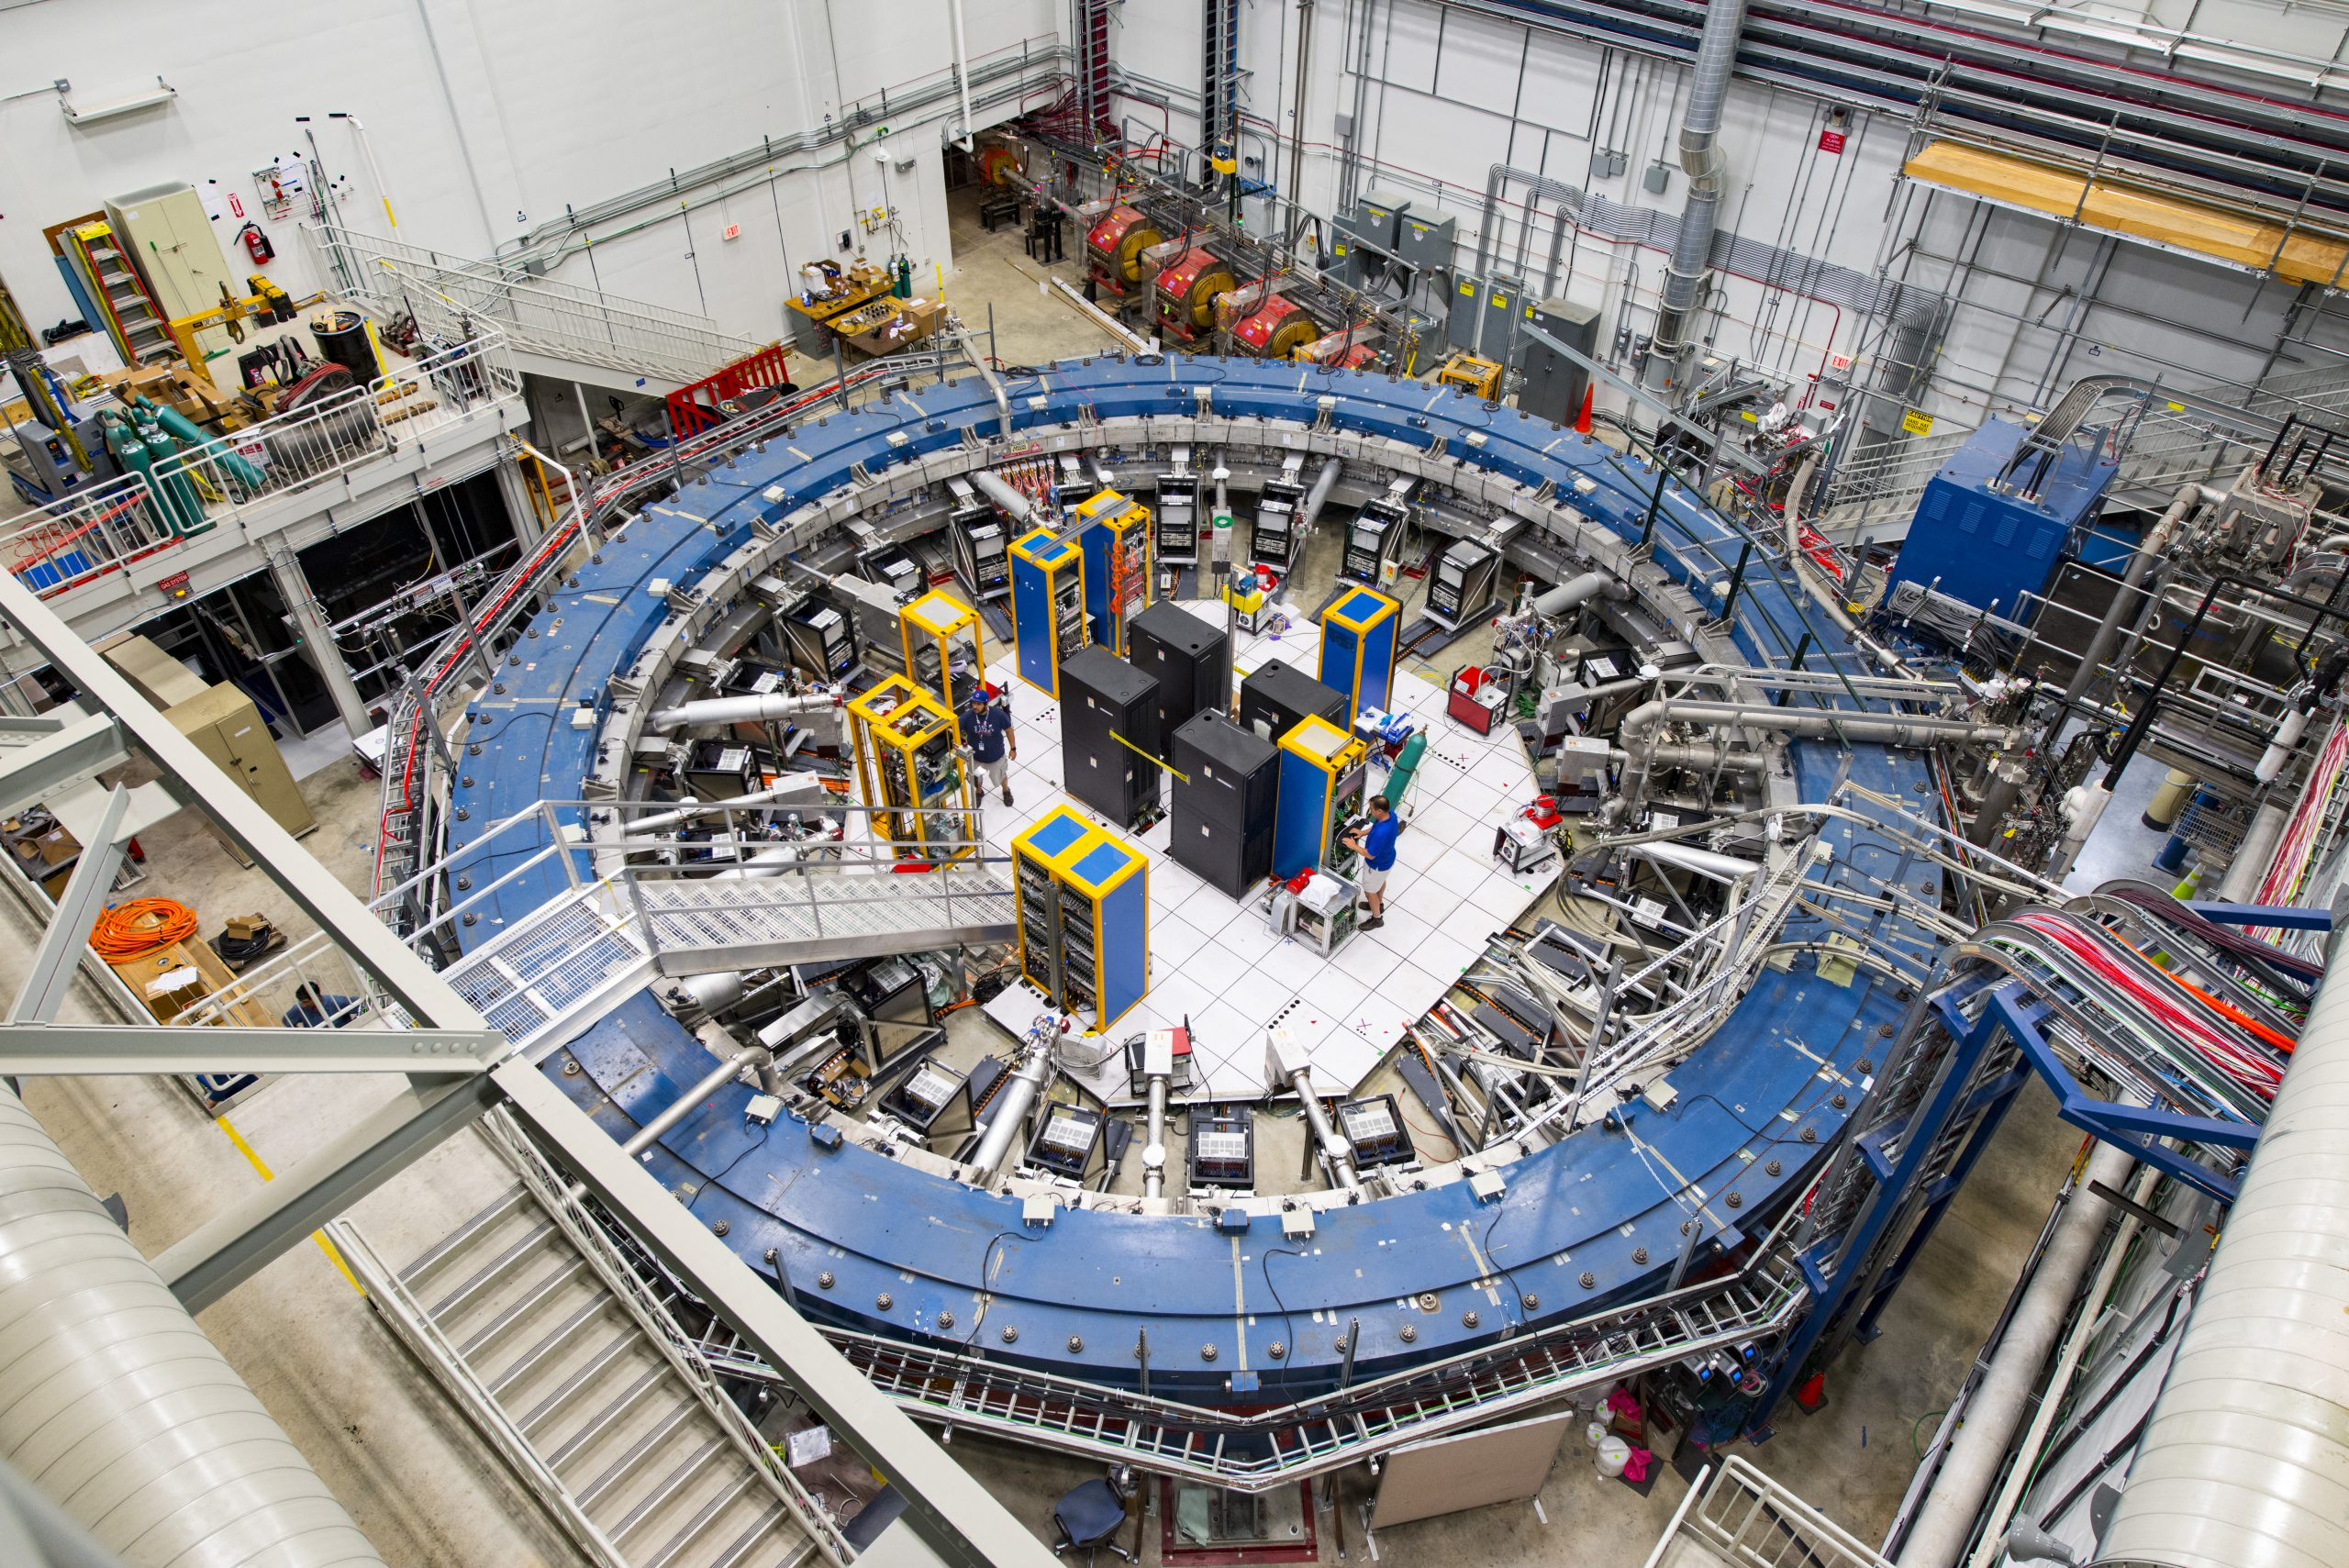 The Muon g-2 experiment takes advantage of the lab's powerful accelerator complex. Fermilab scientists have already collected twice the amount of total data gathered over its four years at Brookhaven National Laboratory, where the experiment ran prior to coming to Fermilab. Photo: Reidar Hahn